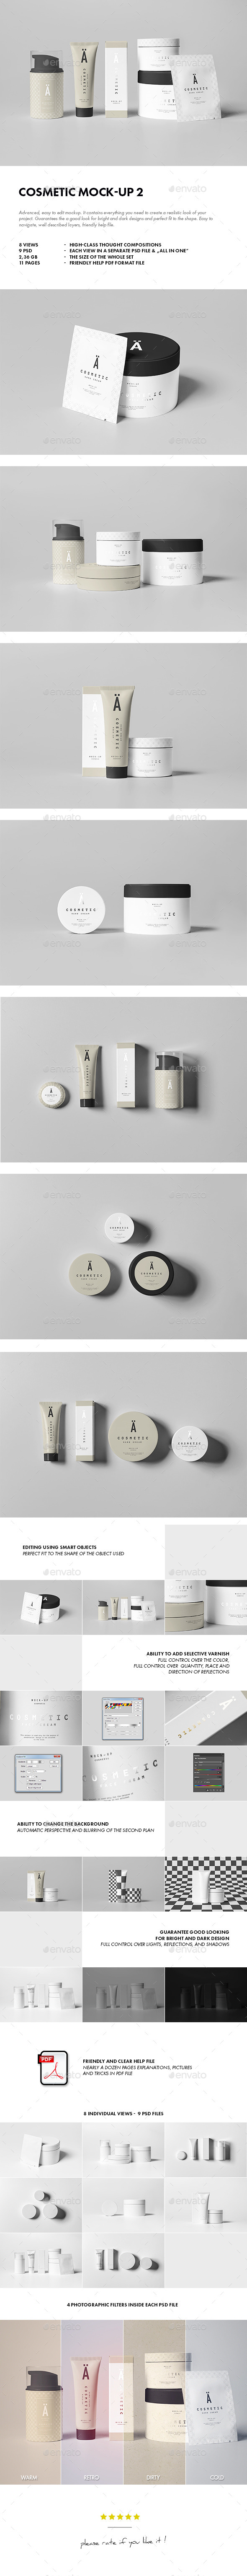 GraphicRiver Cosmetic Mock-up 2 11547511